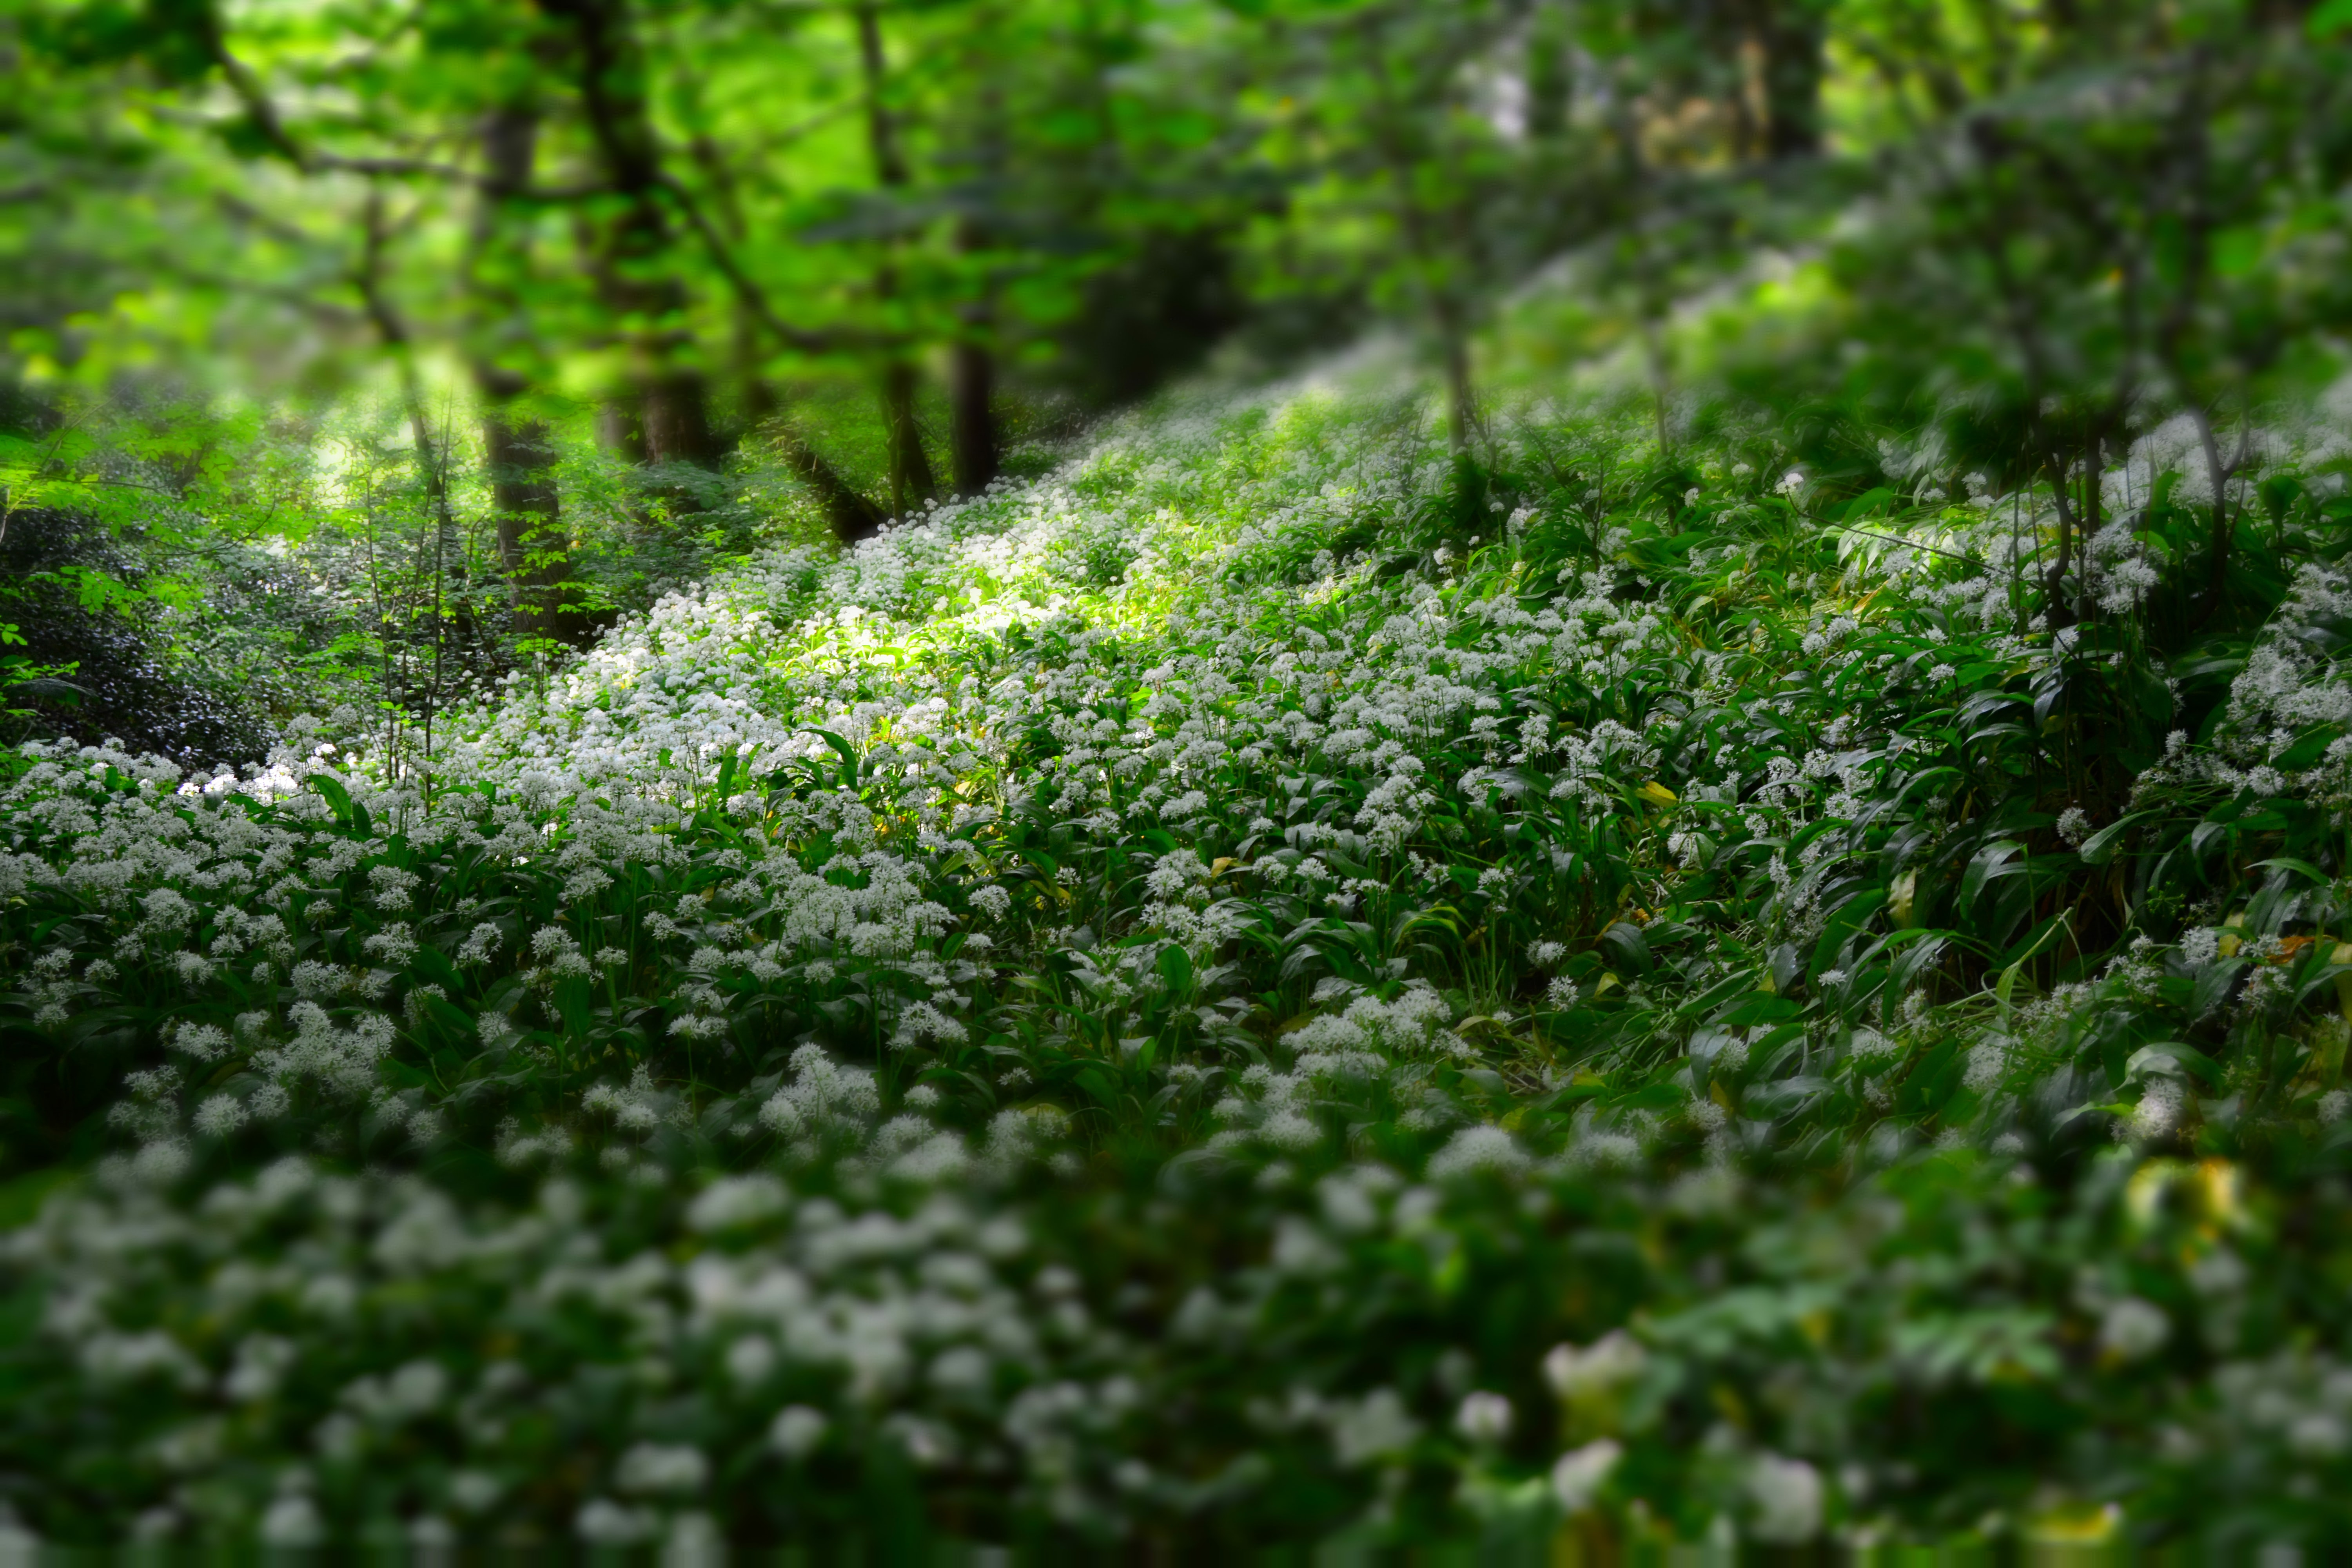 A glade covered with white flowers in a forest